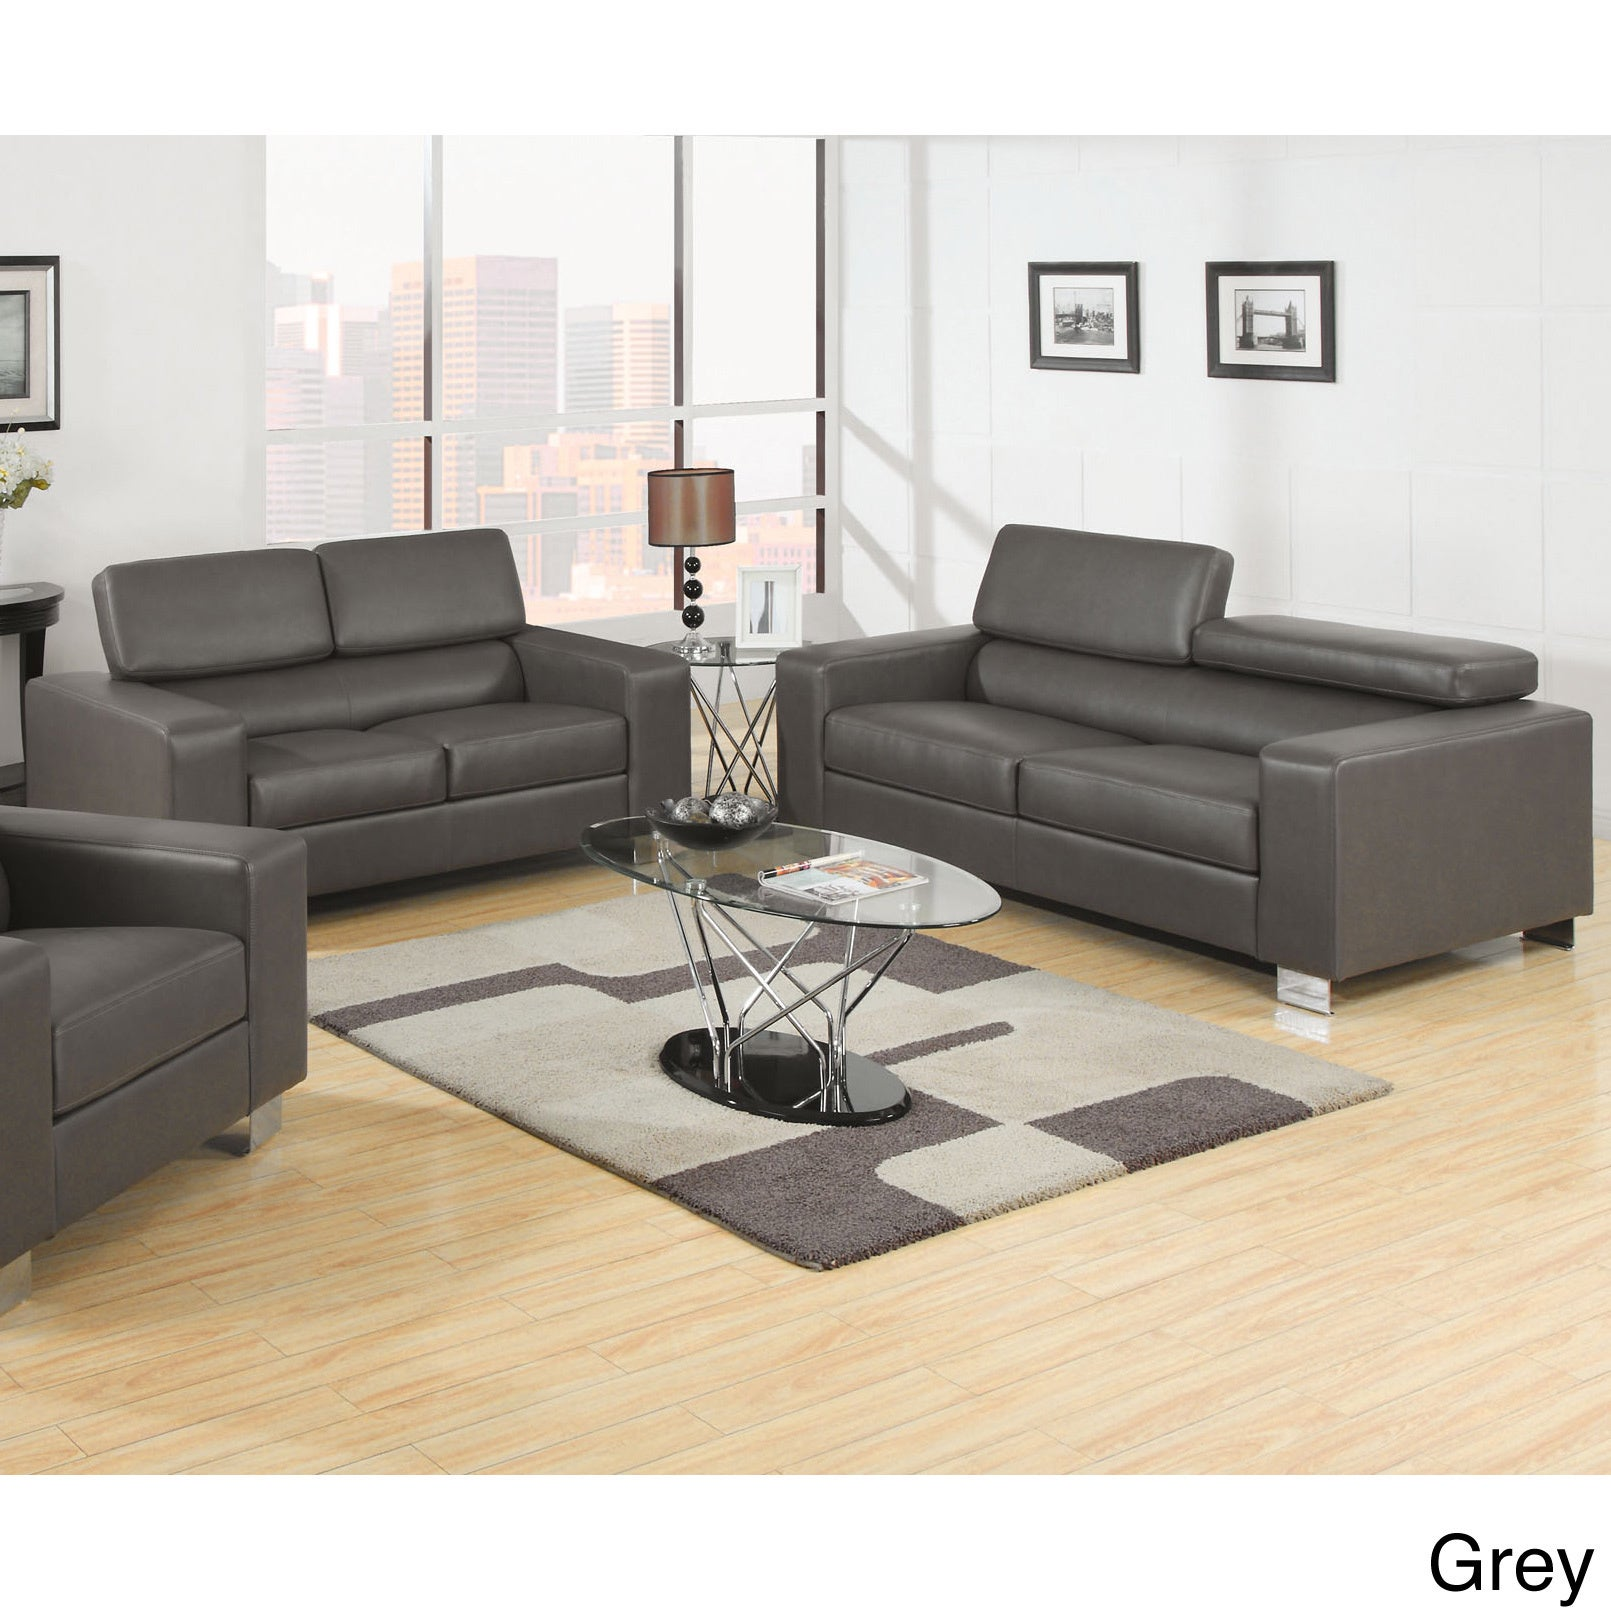 leather p bonded brown set modern w and sofa image dark woptions loveseat options